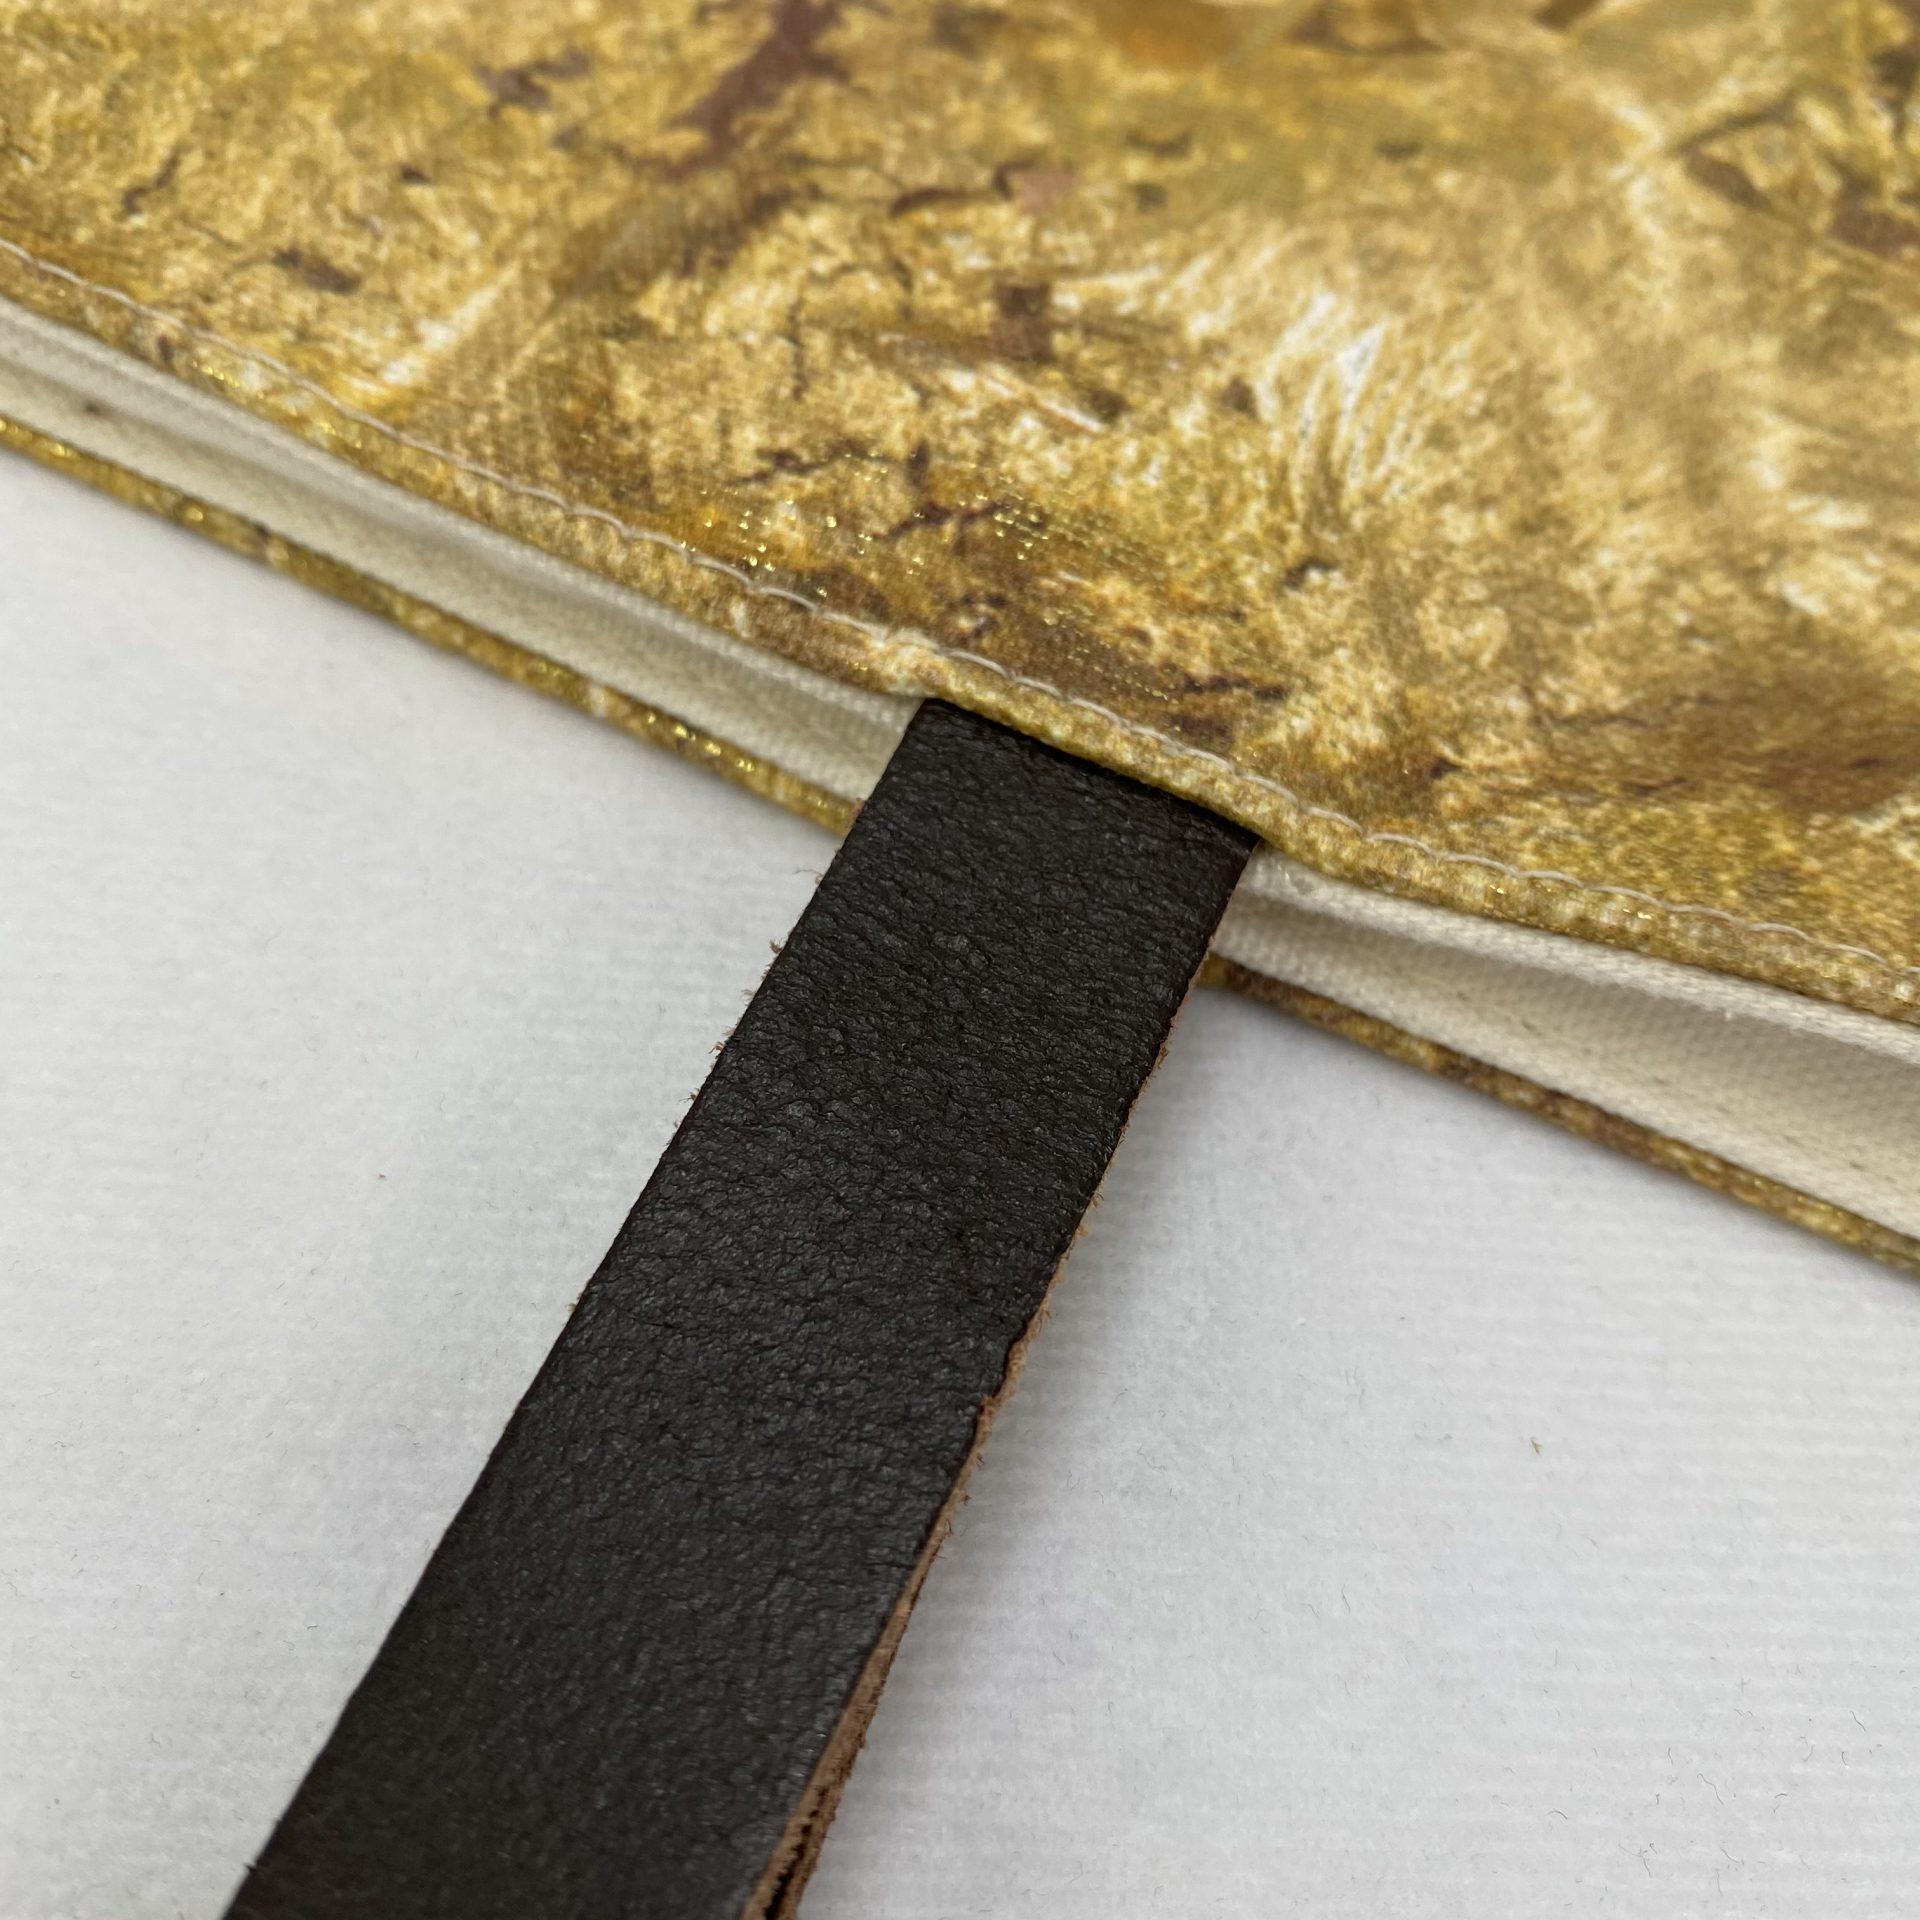 Leather handles on a luxury bag with innovative foil printing by Paul Bristow's for the Tate